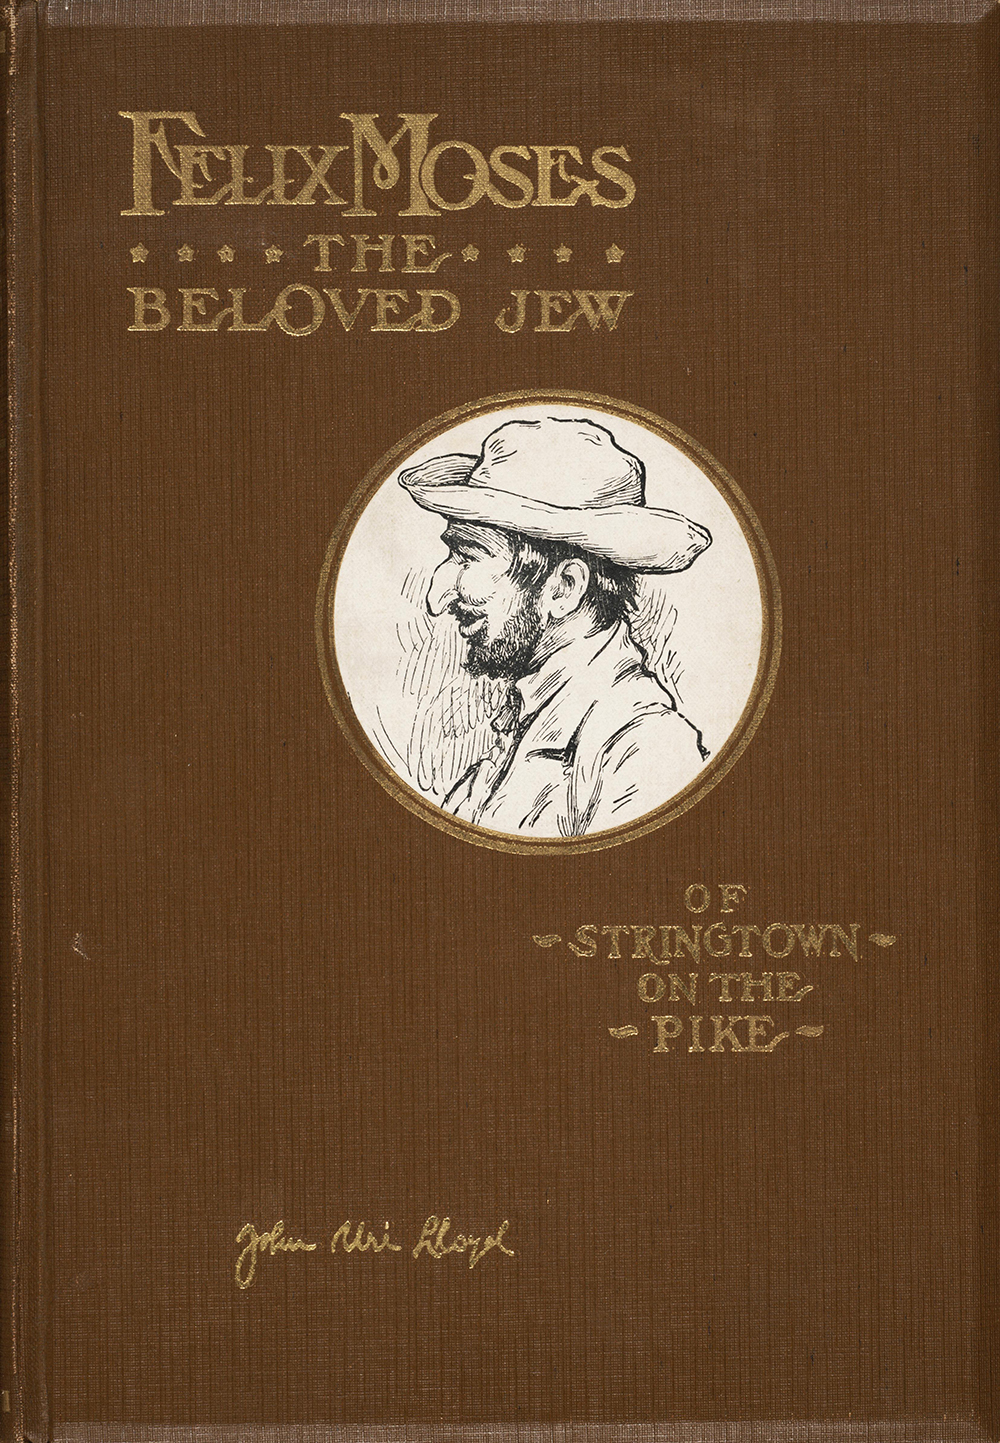 Cover of the 1930 edition of Felix Moses.